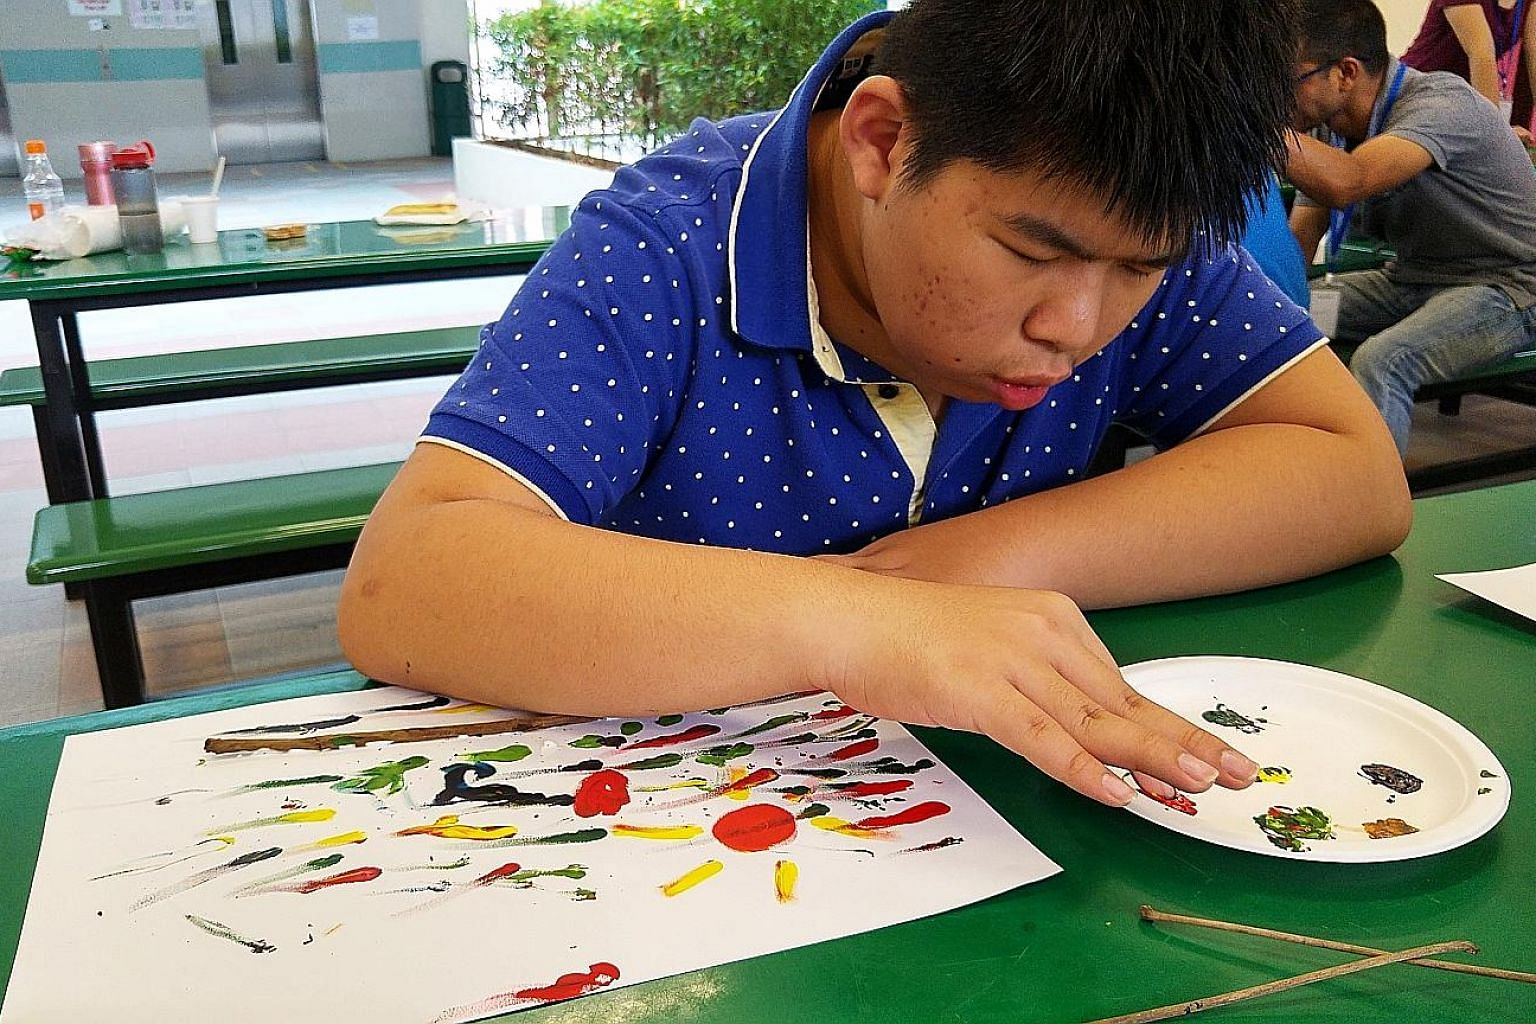 Boon Hong enjoying finger-painting at the headquarters of voluntary welfare organisation AWWA. Caring for the 15-year-old, who has epilepsy, has been exhausting work for his mother. But since last year, she has been getting some respite every Saturda